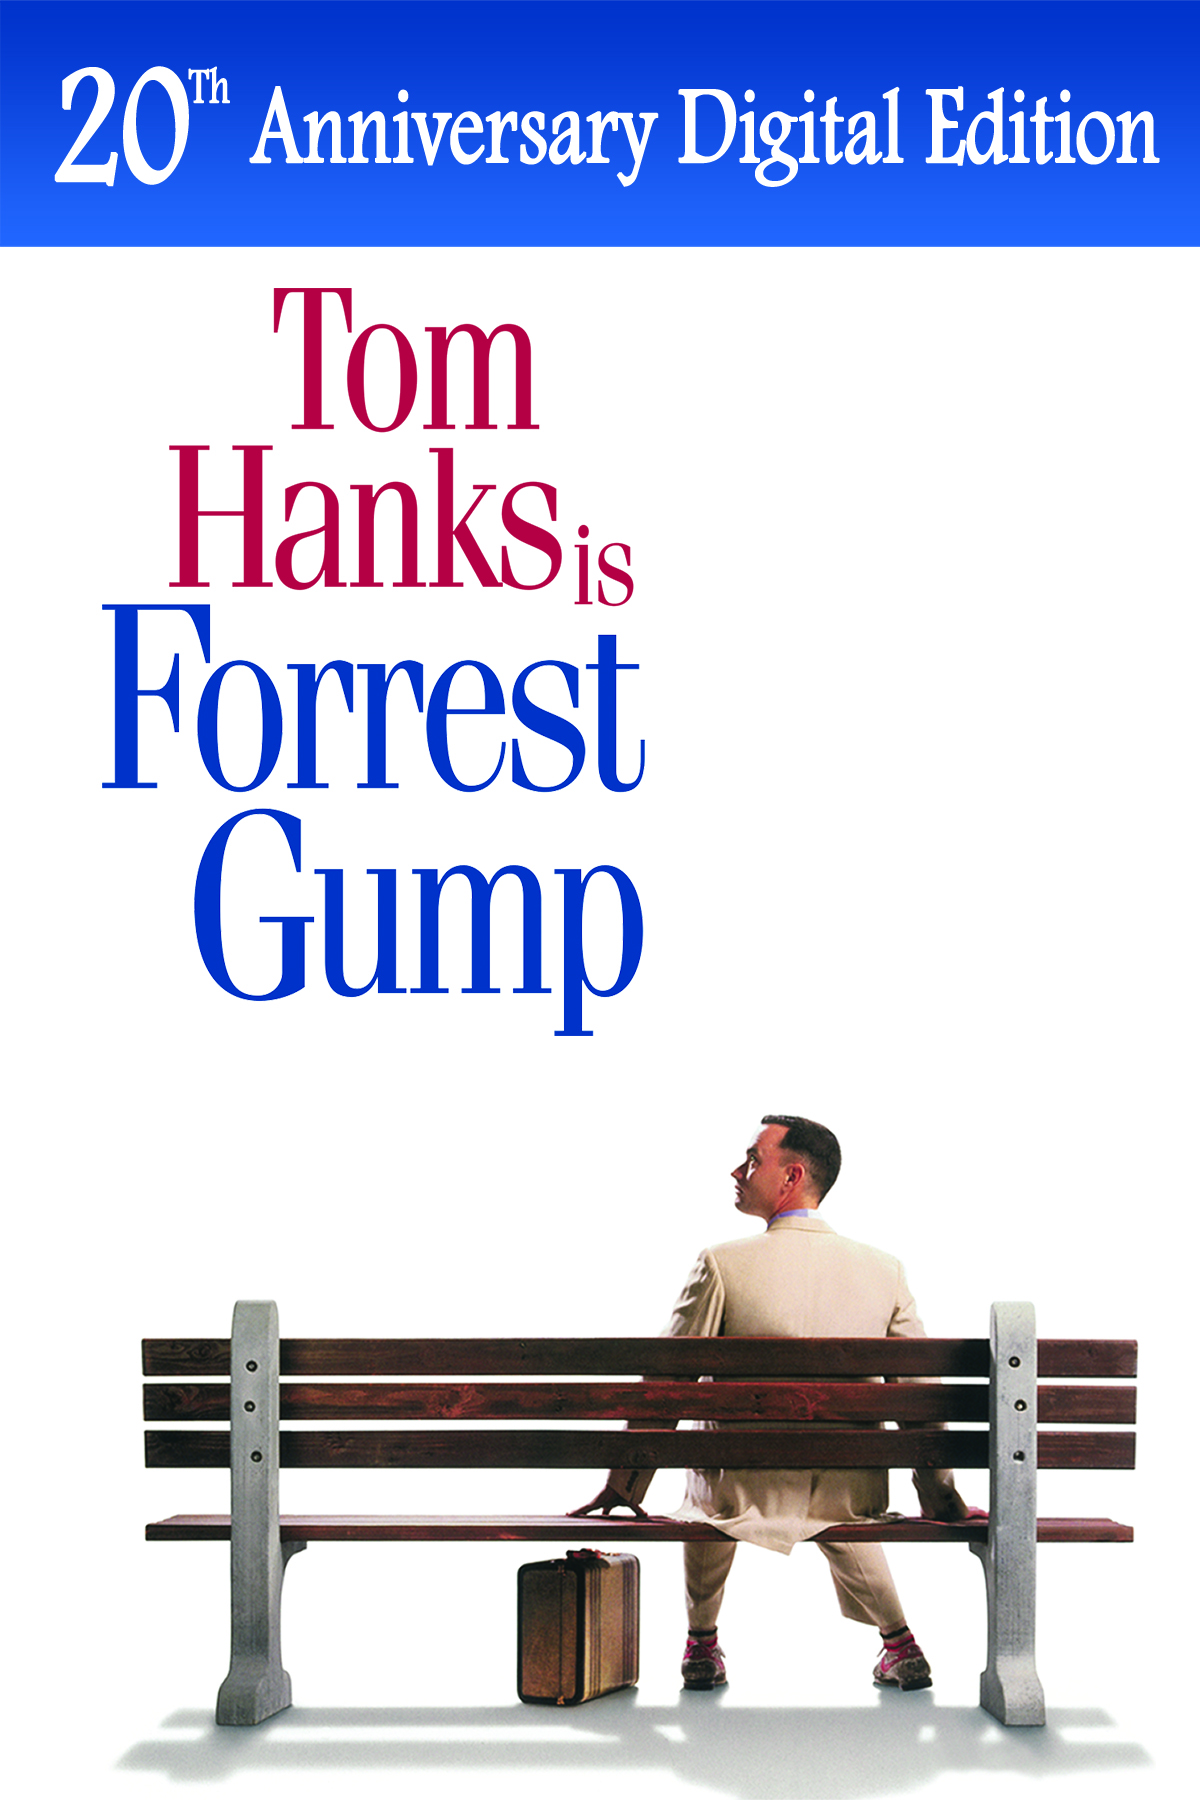 forrest gump movie questions In forrest gump, how did jenny die if jenny from forrest gump had aids why didnt forrest get it what is the moral of the movie forrest gump.